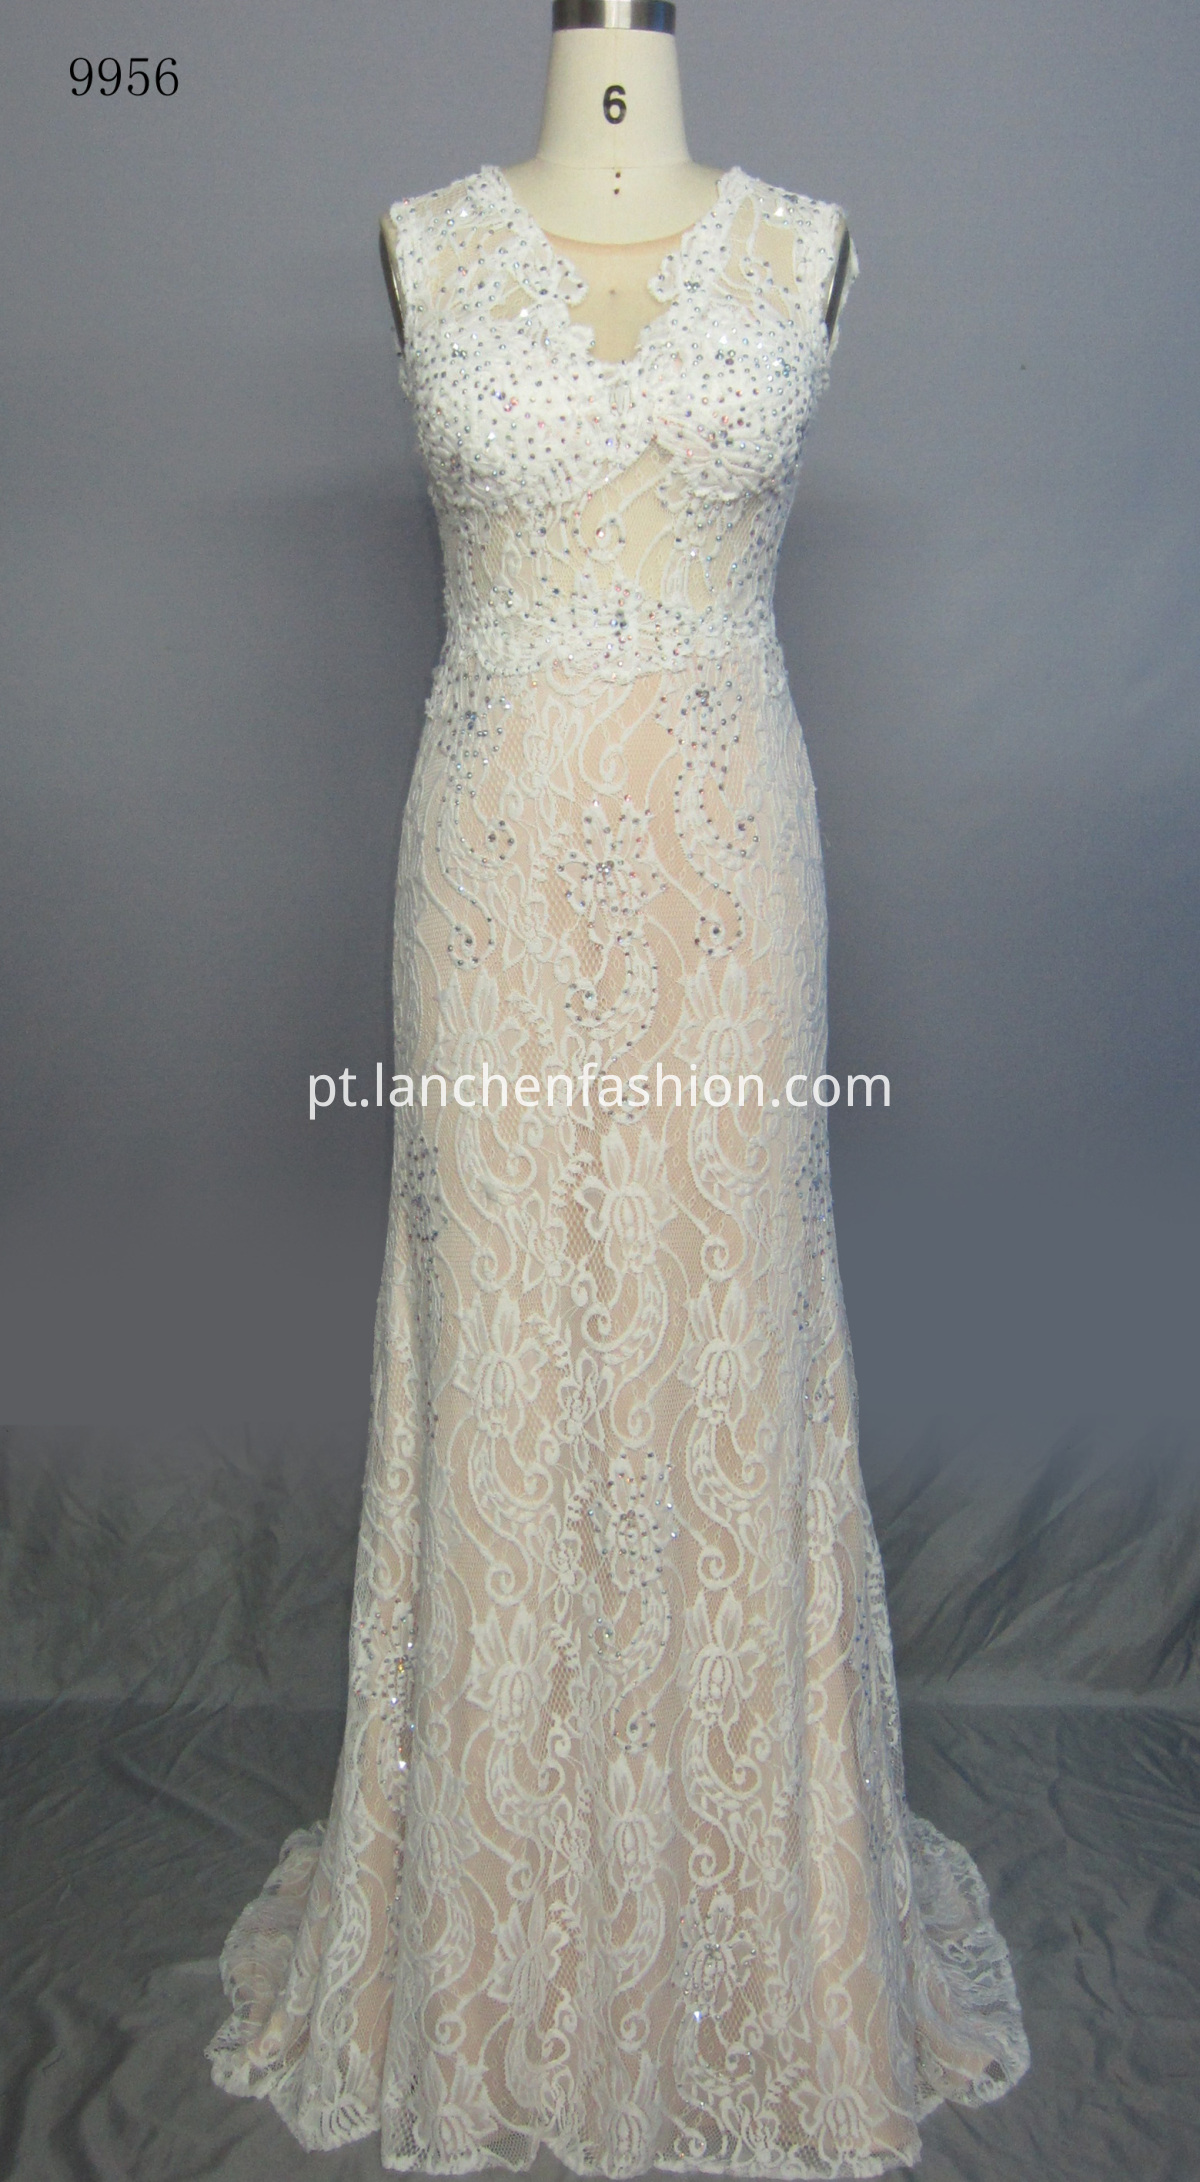 Evening Simple Dress IVORY